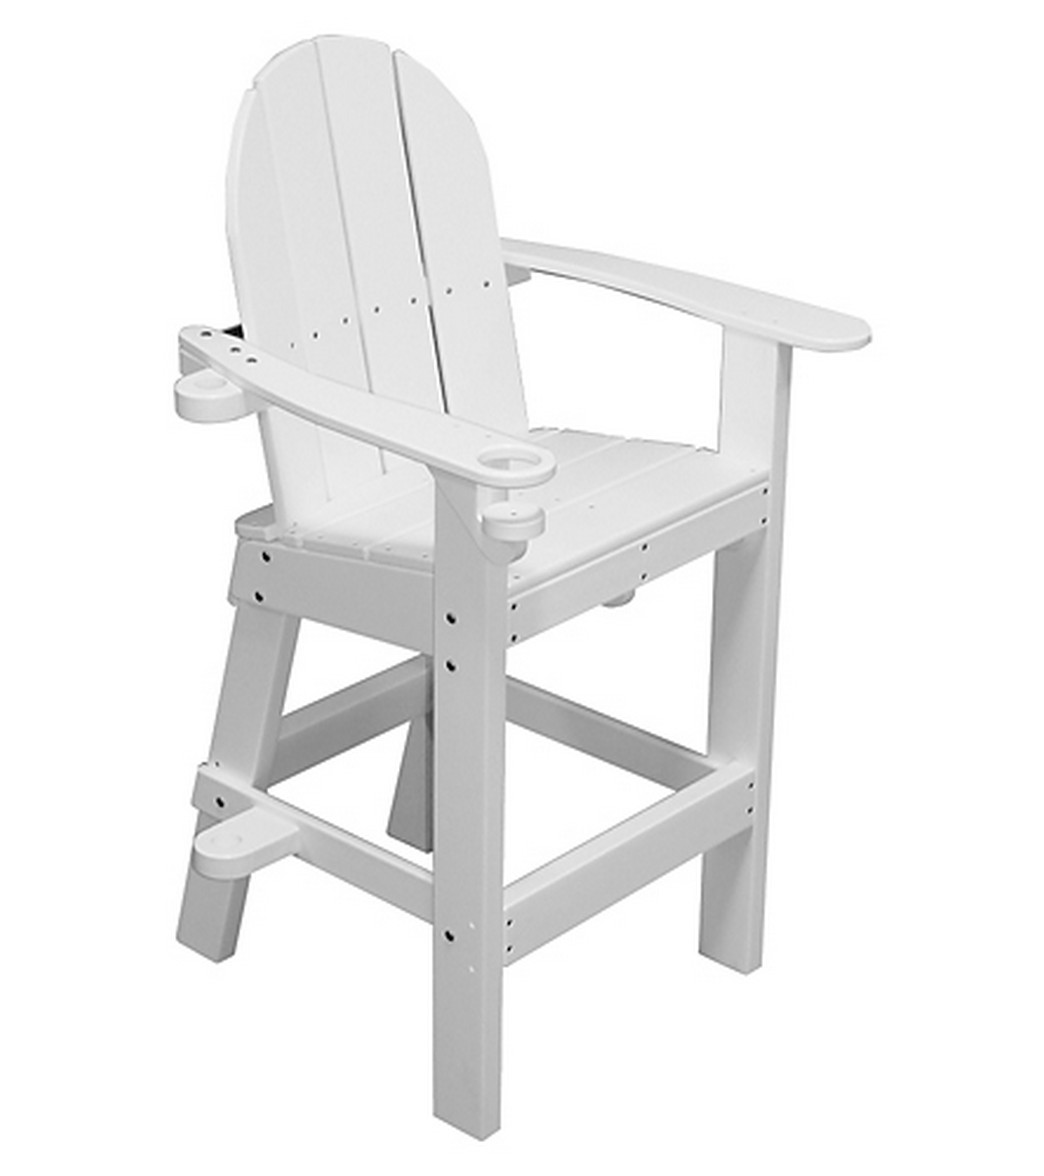 Tailwind Recycled Plastic Lifeguard Chair